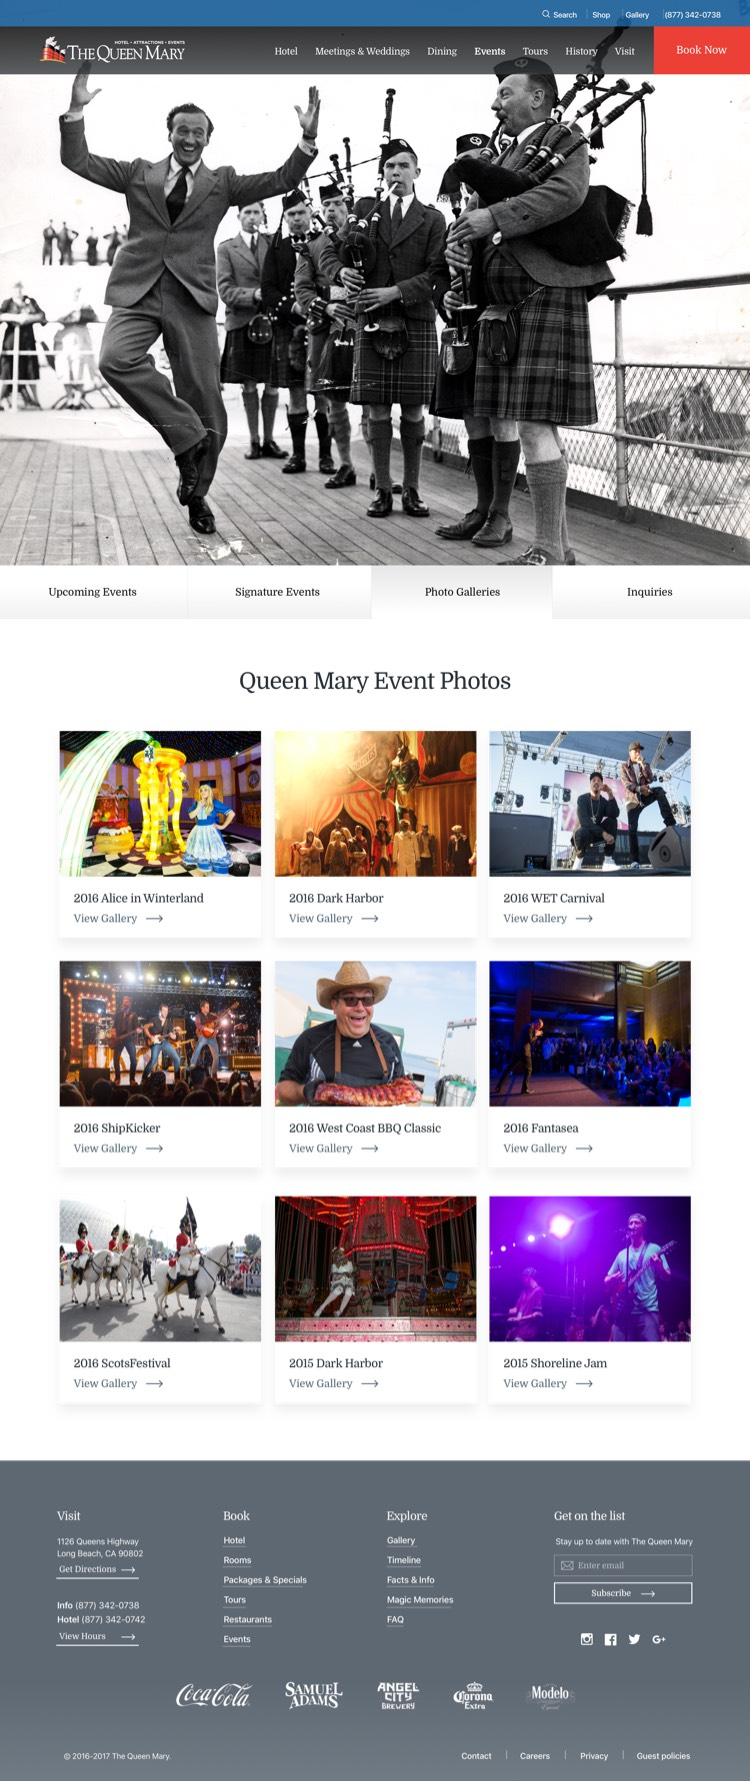 queenmary-events